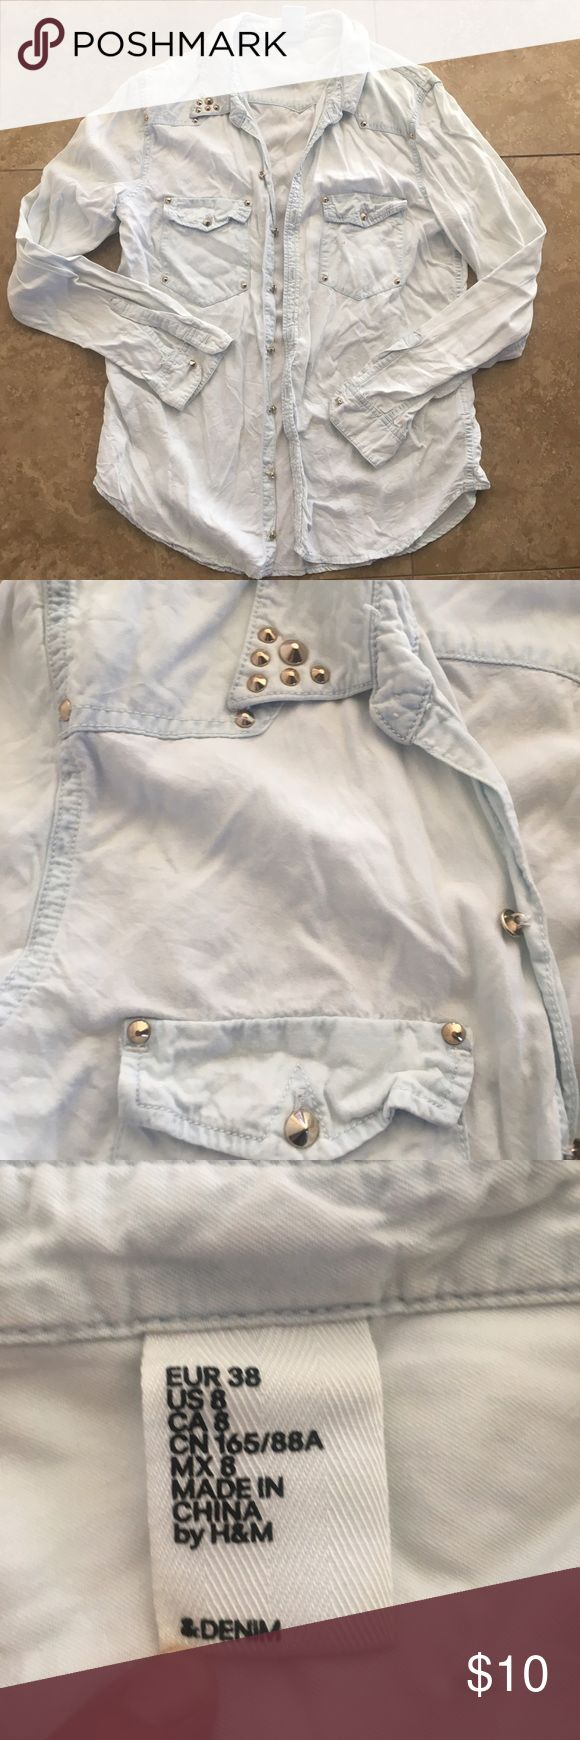 H&M studley Denim H&M Denim shirt. Fun denim shirt with a lot of edge. This Denim shirt has studs for buttons and a studley accent on collar. There are two stains on the denim maybe they can be dry cleaned out. Size 8 /medium H&M Tops Button Down Shirts